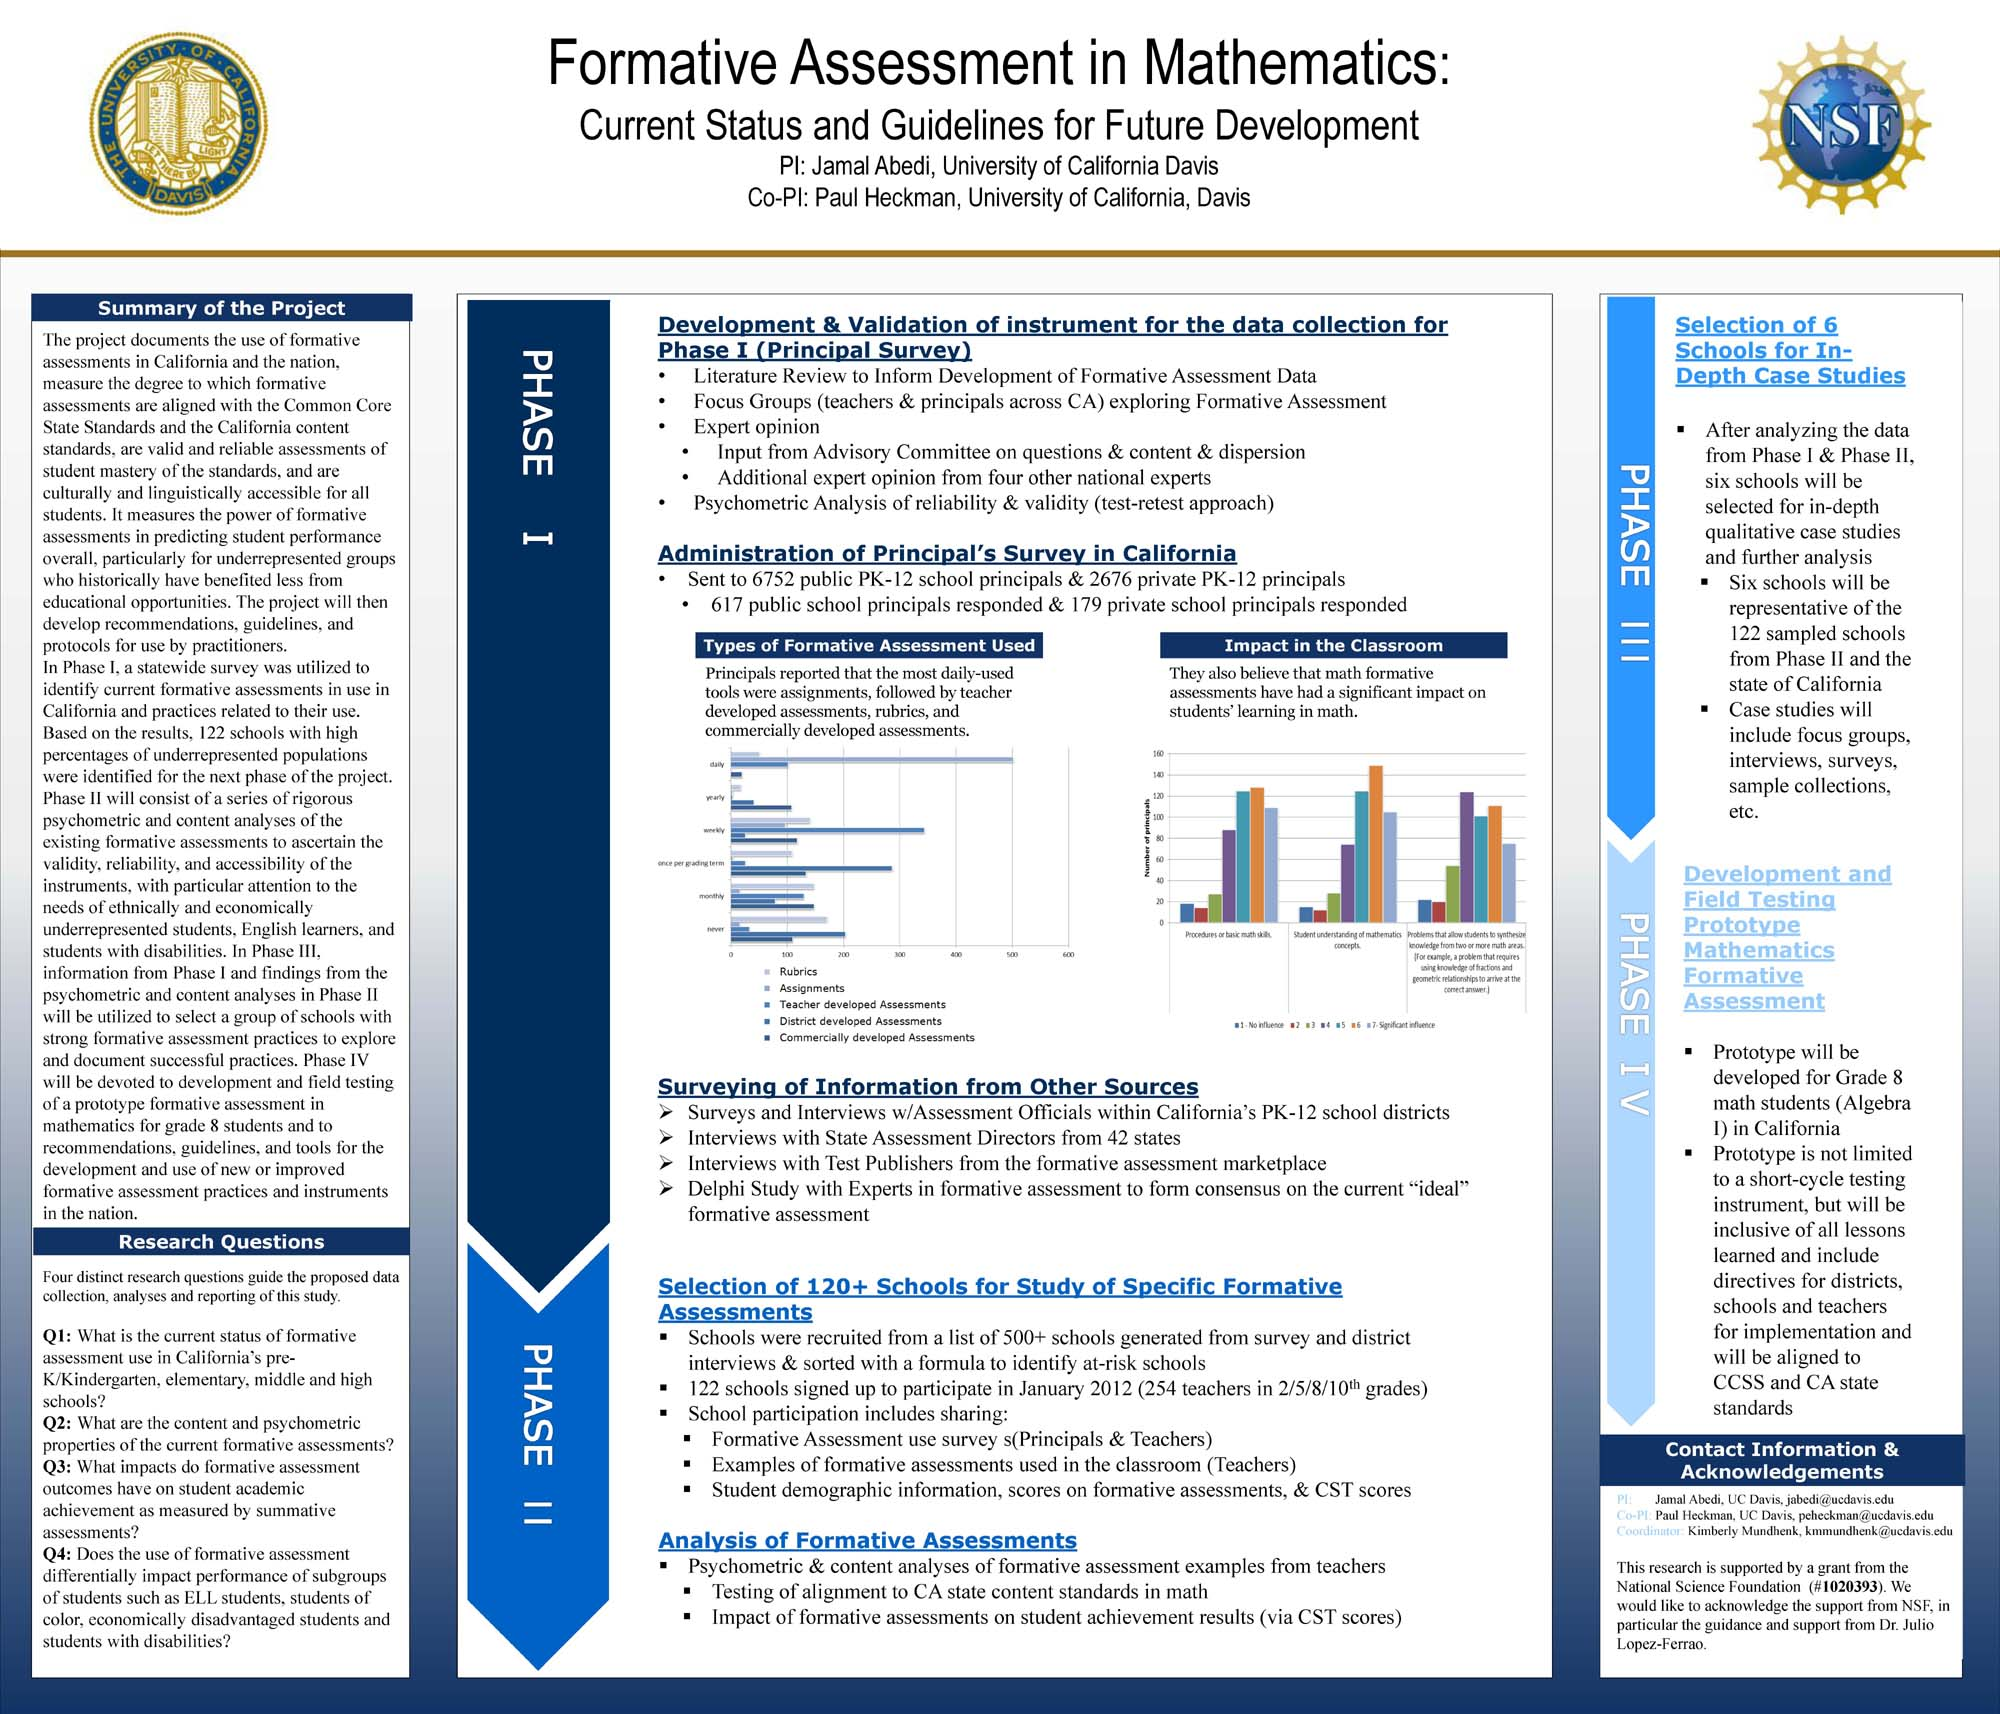 Formative Assessment in Mathematics: Current Status and